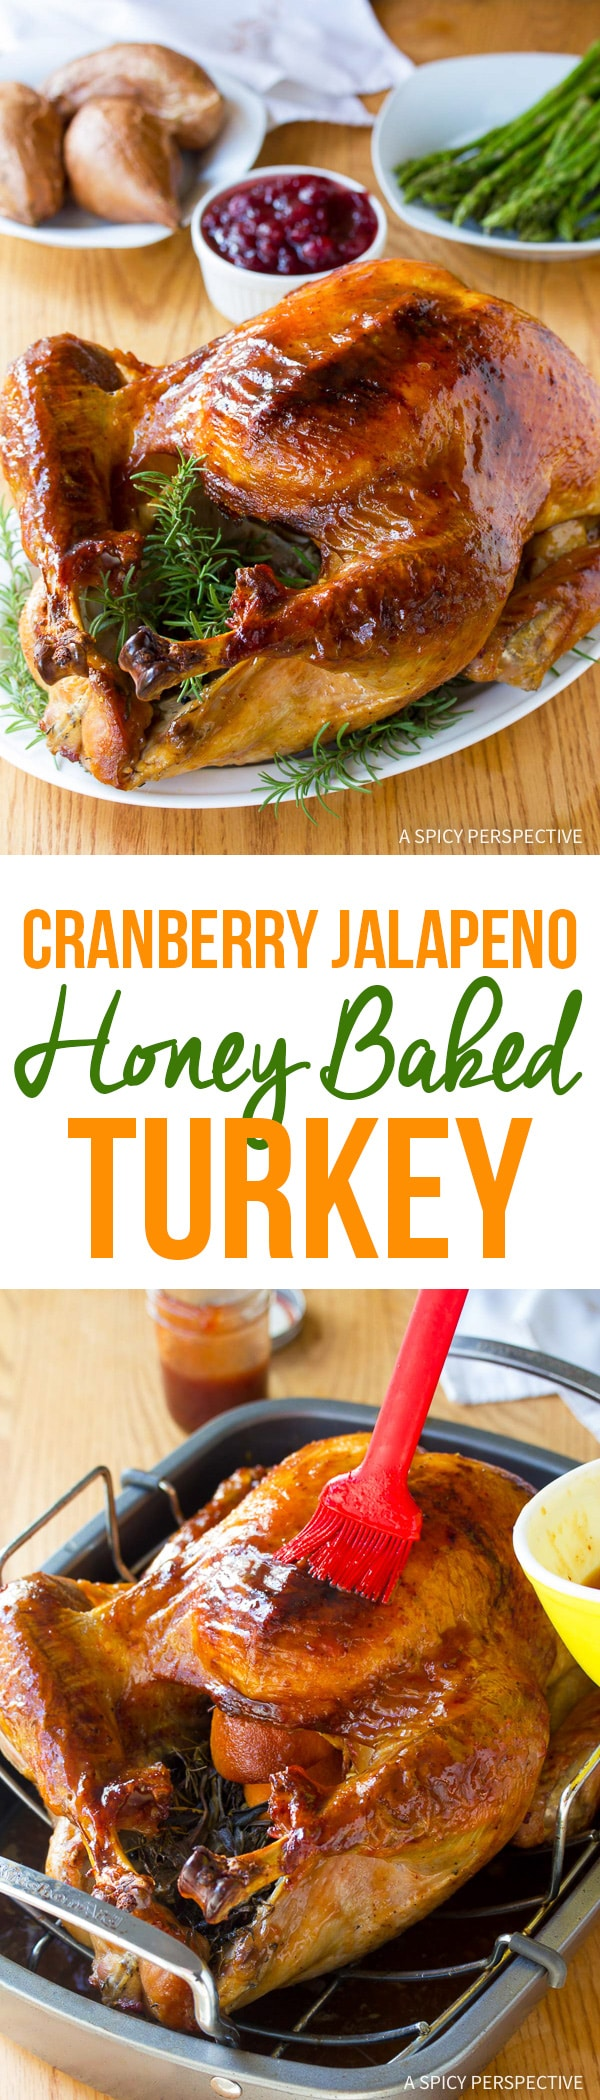 Glistening Cranberry Jalapeno Honey Baked Turkey Recipe